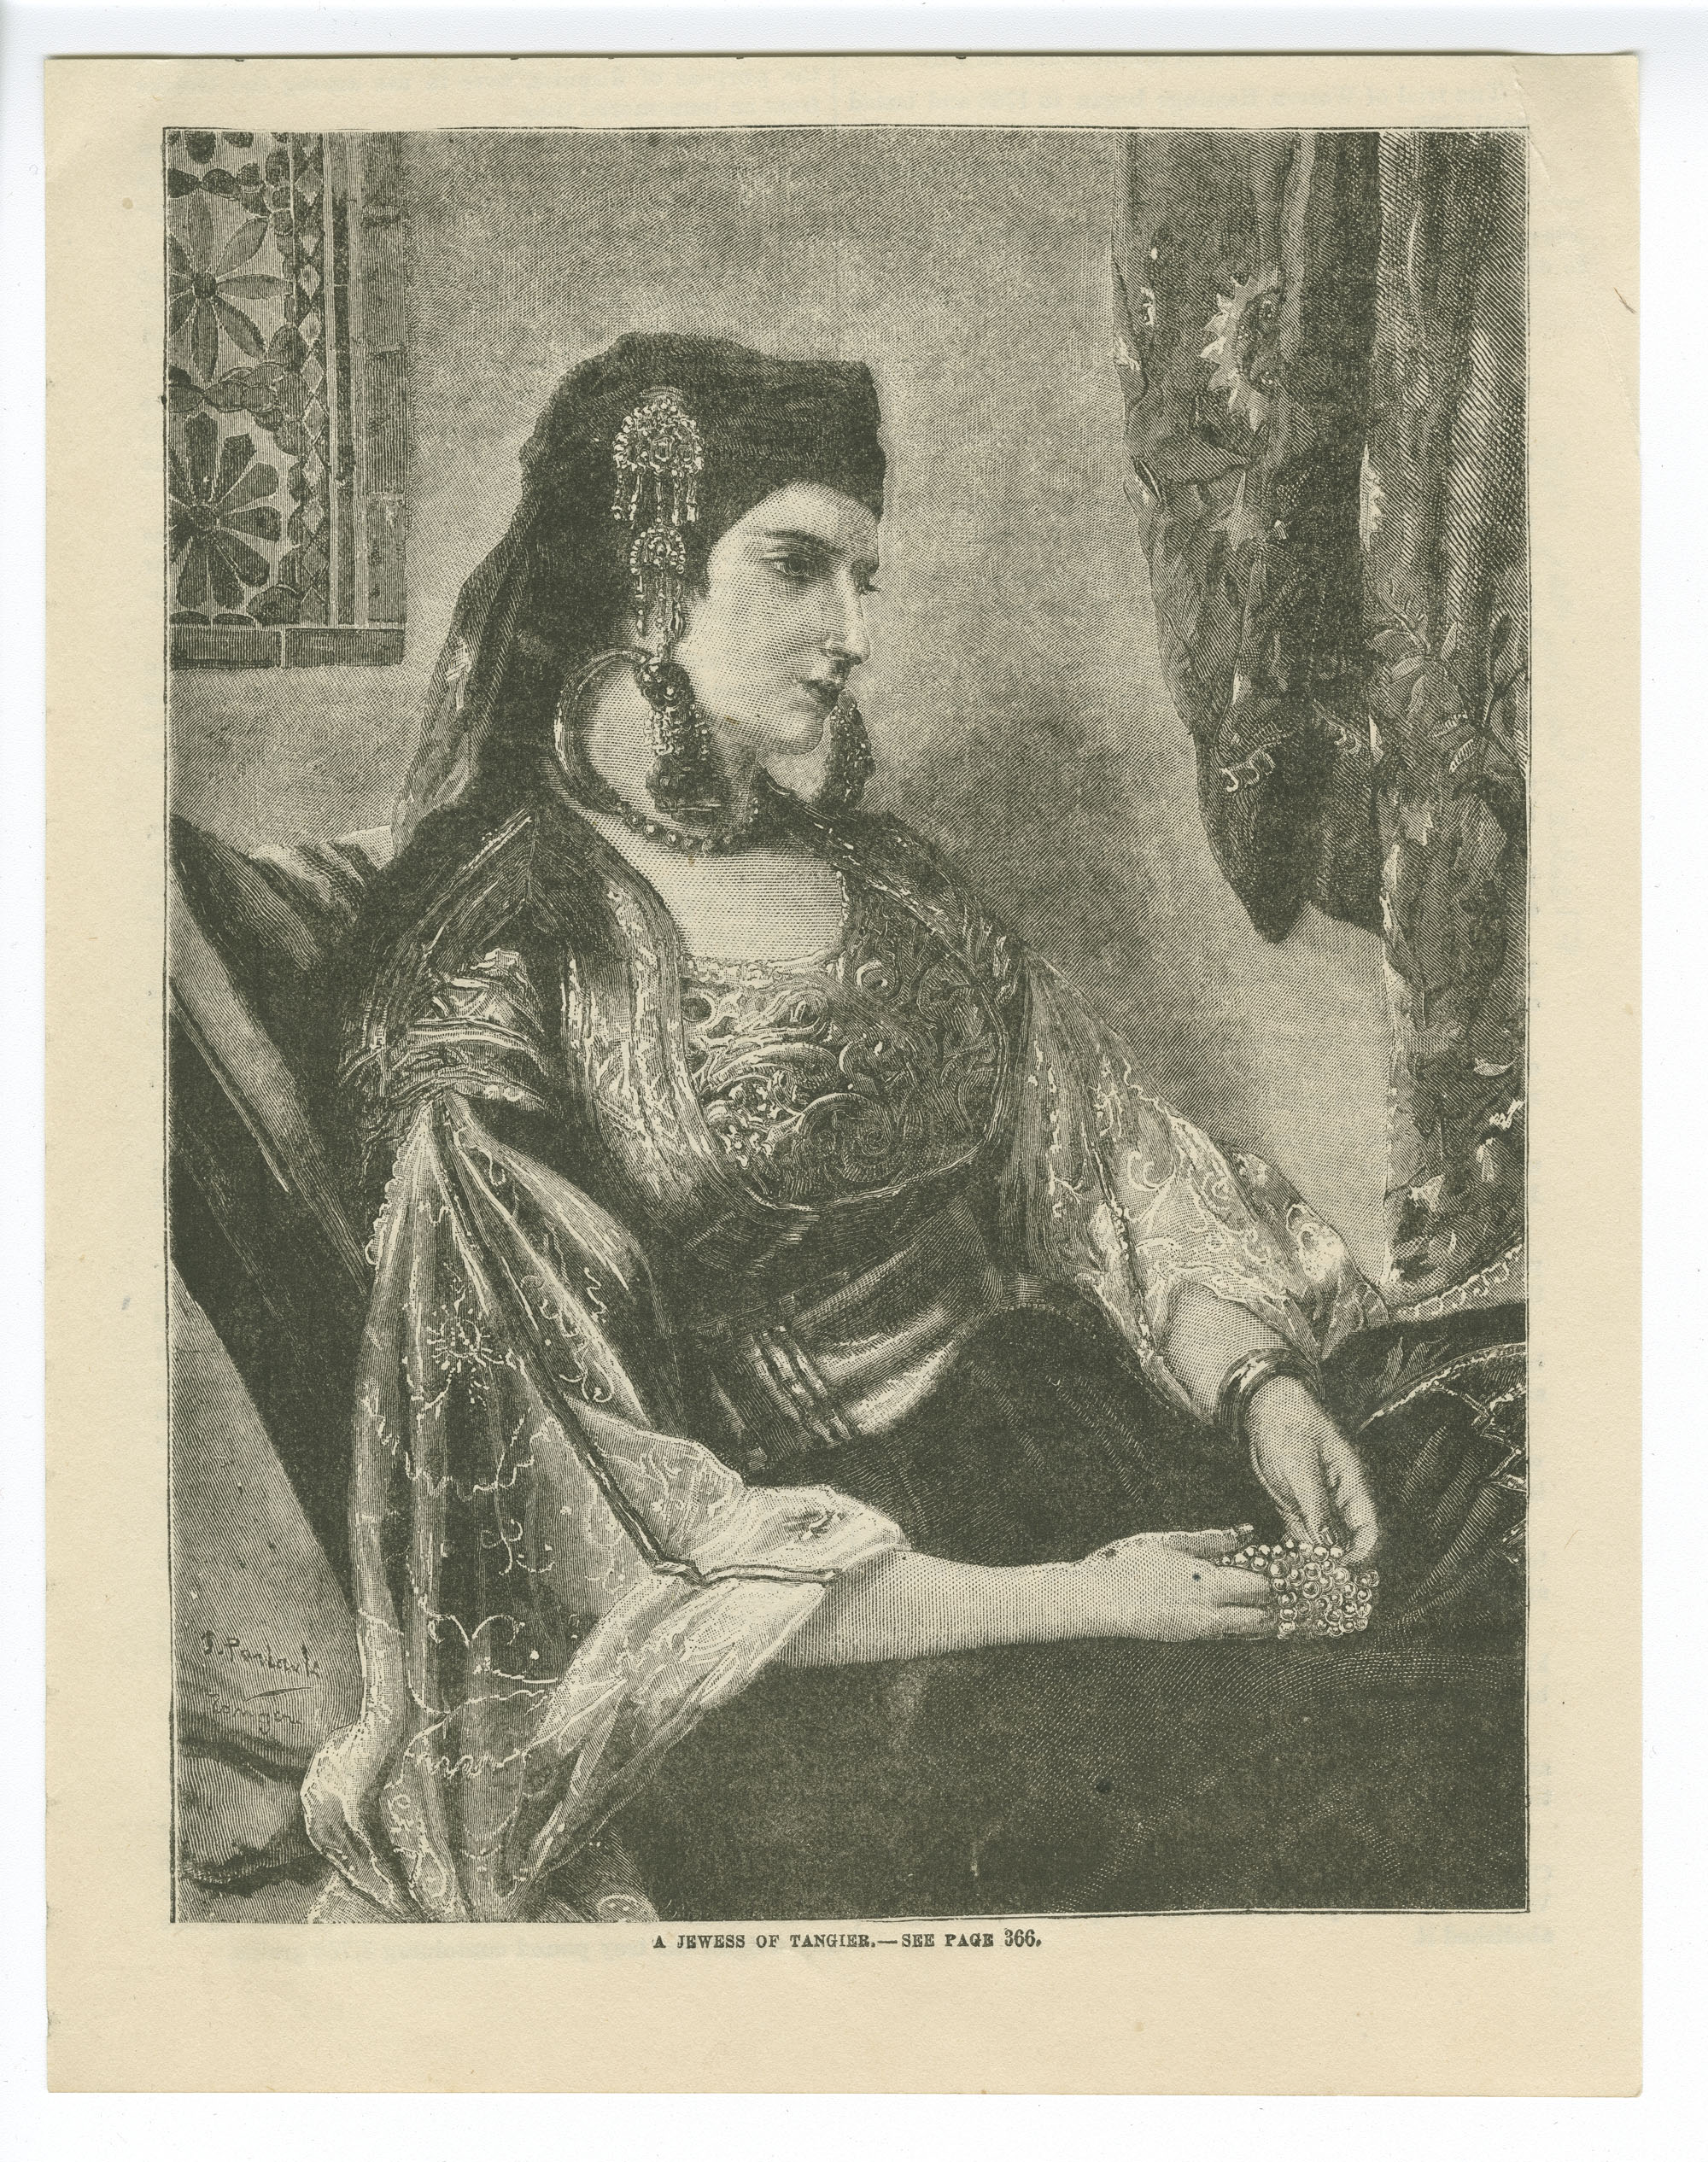 A Jewess of Tangier